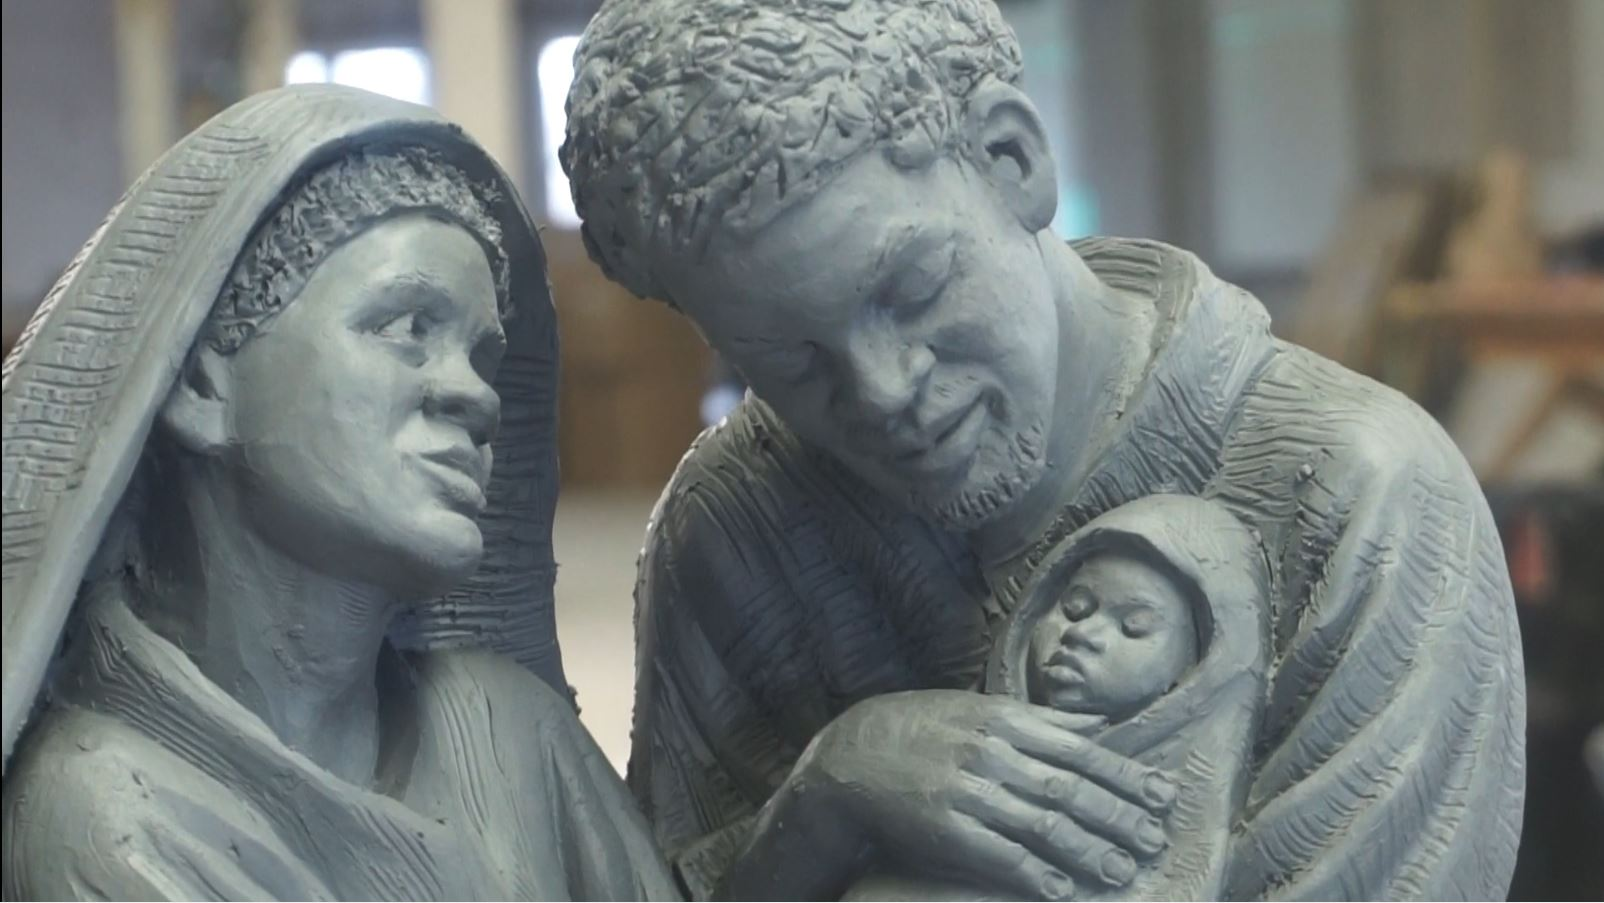 Canadian sculptor puts Black lives into Catholic art